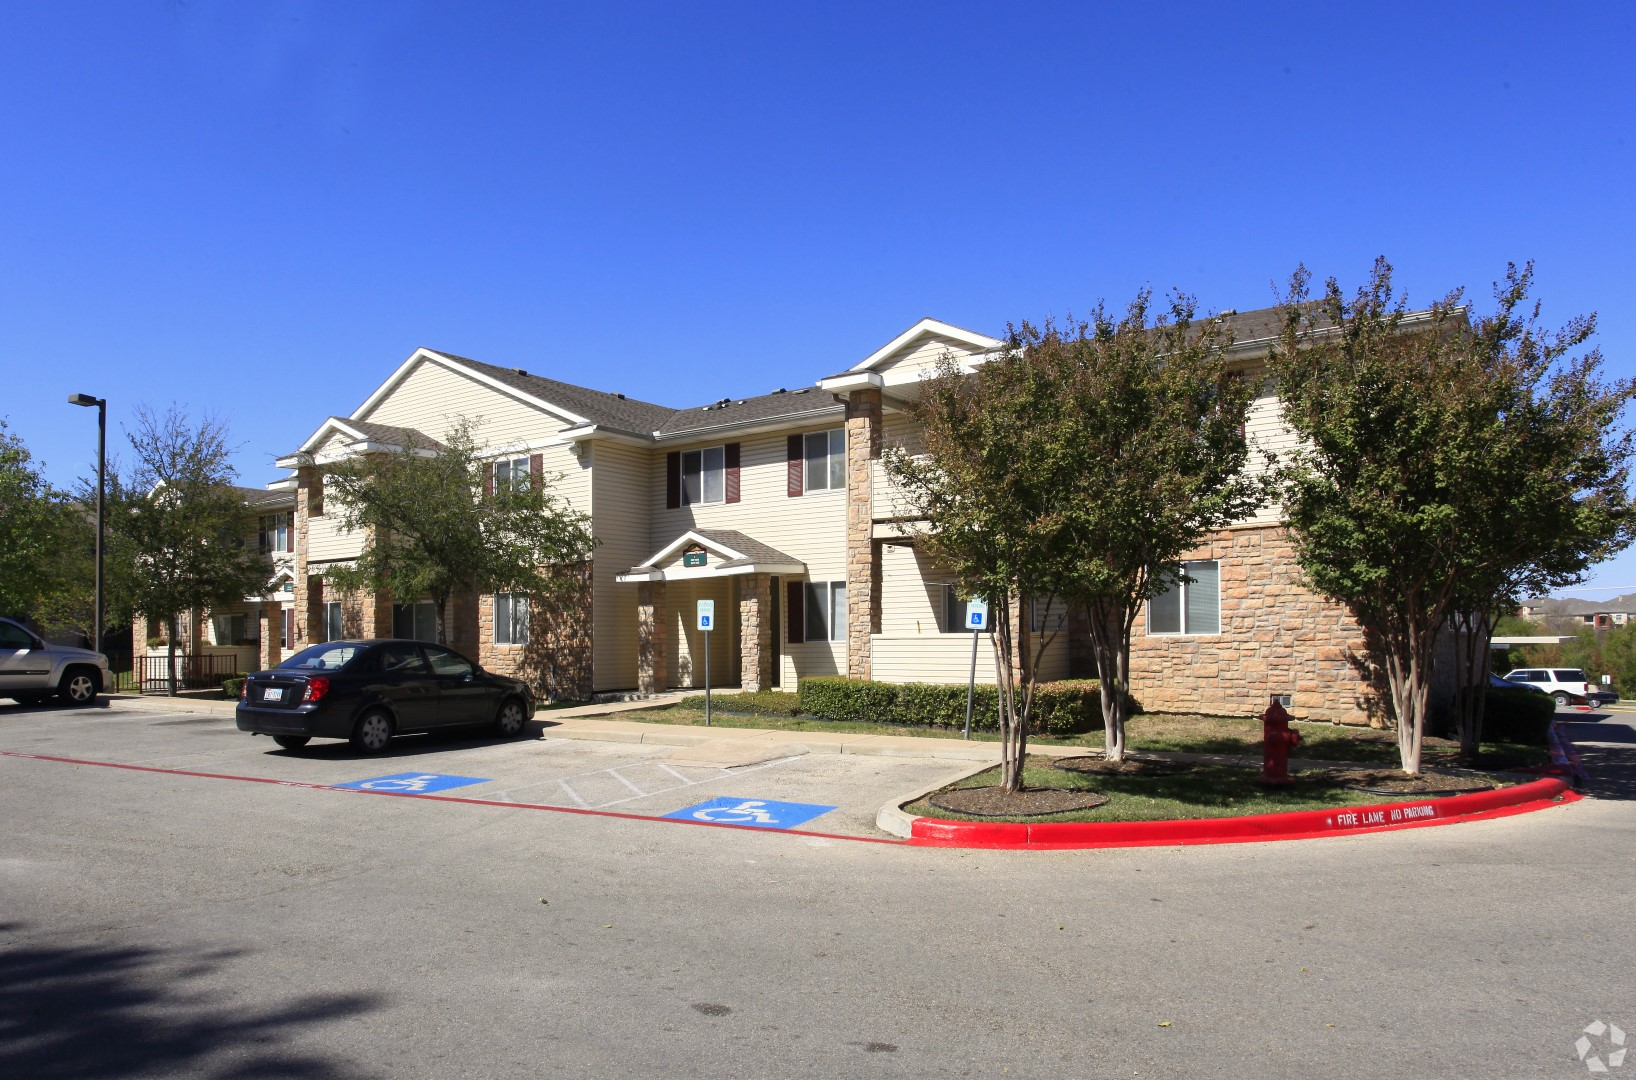 Building Front View at Parkwood Terrace, Round Rock, Texas